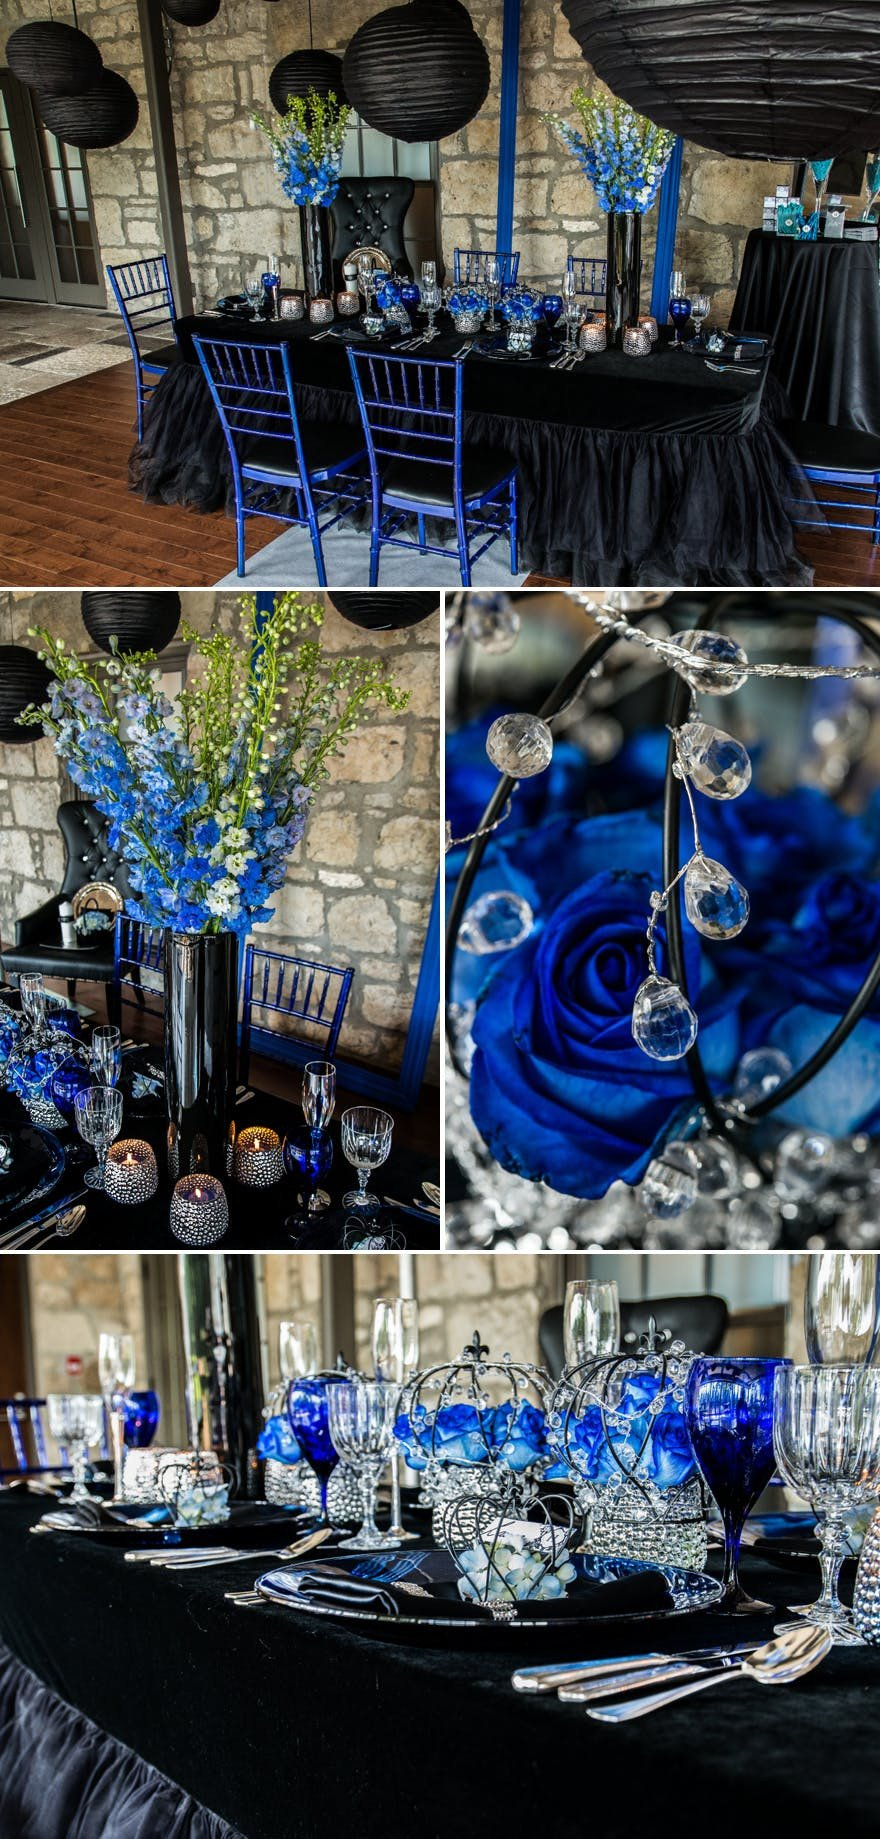 Royal Blue Wedding Decor Ideas New 50 Stunning Diy Wedding Centrepieces Ideas and Inspiration Confetti